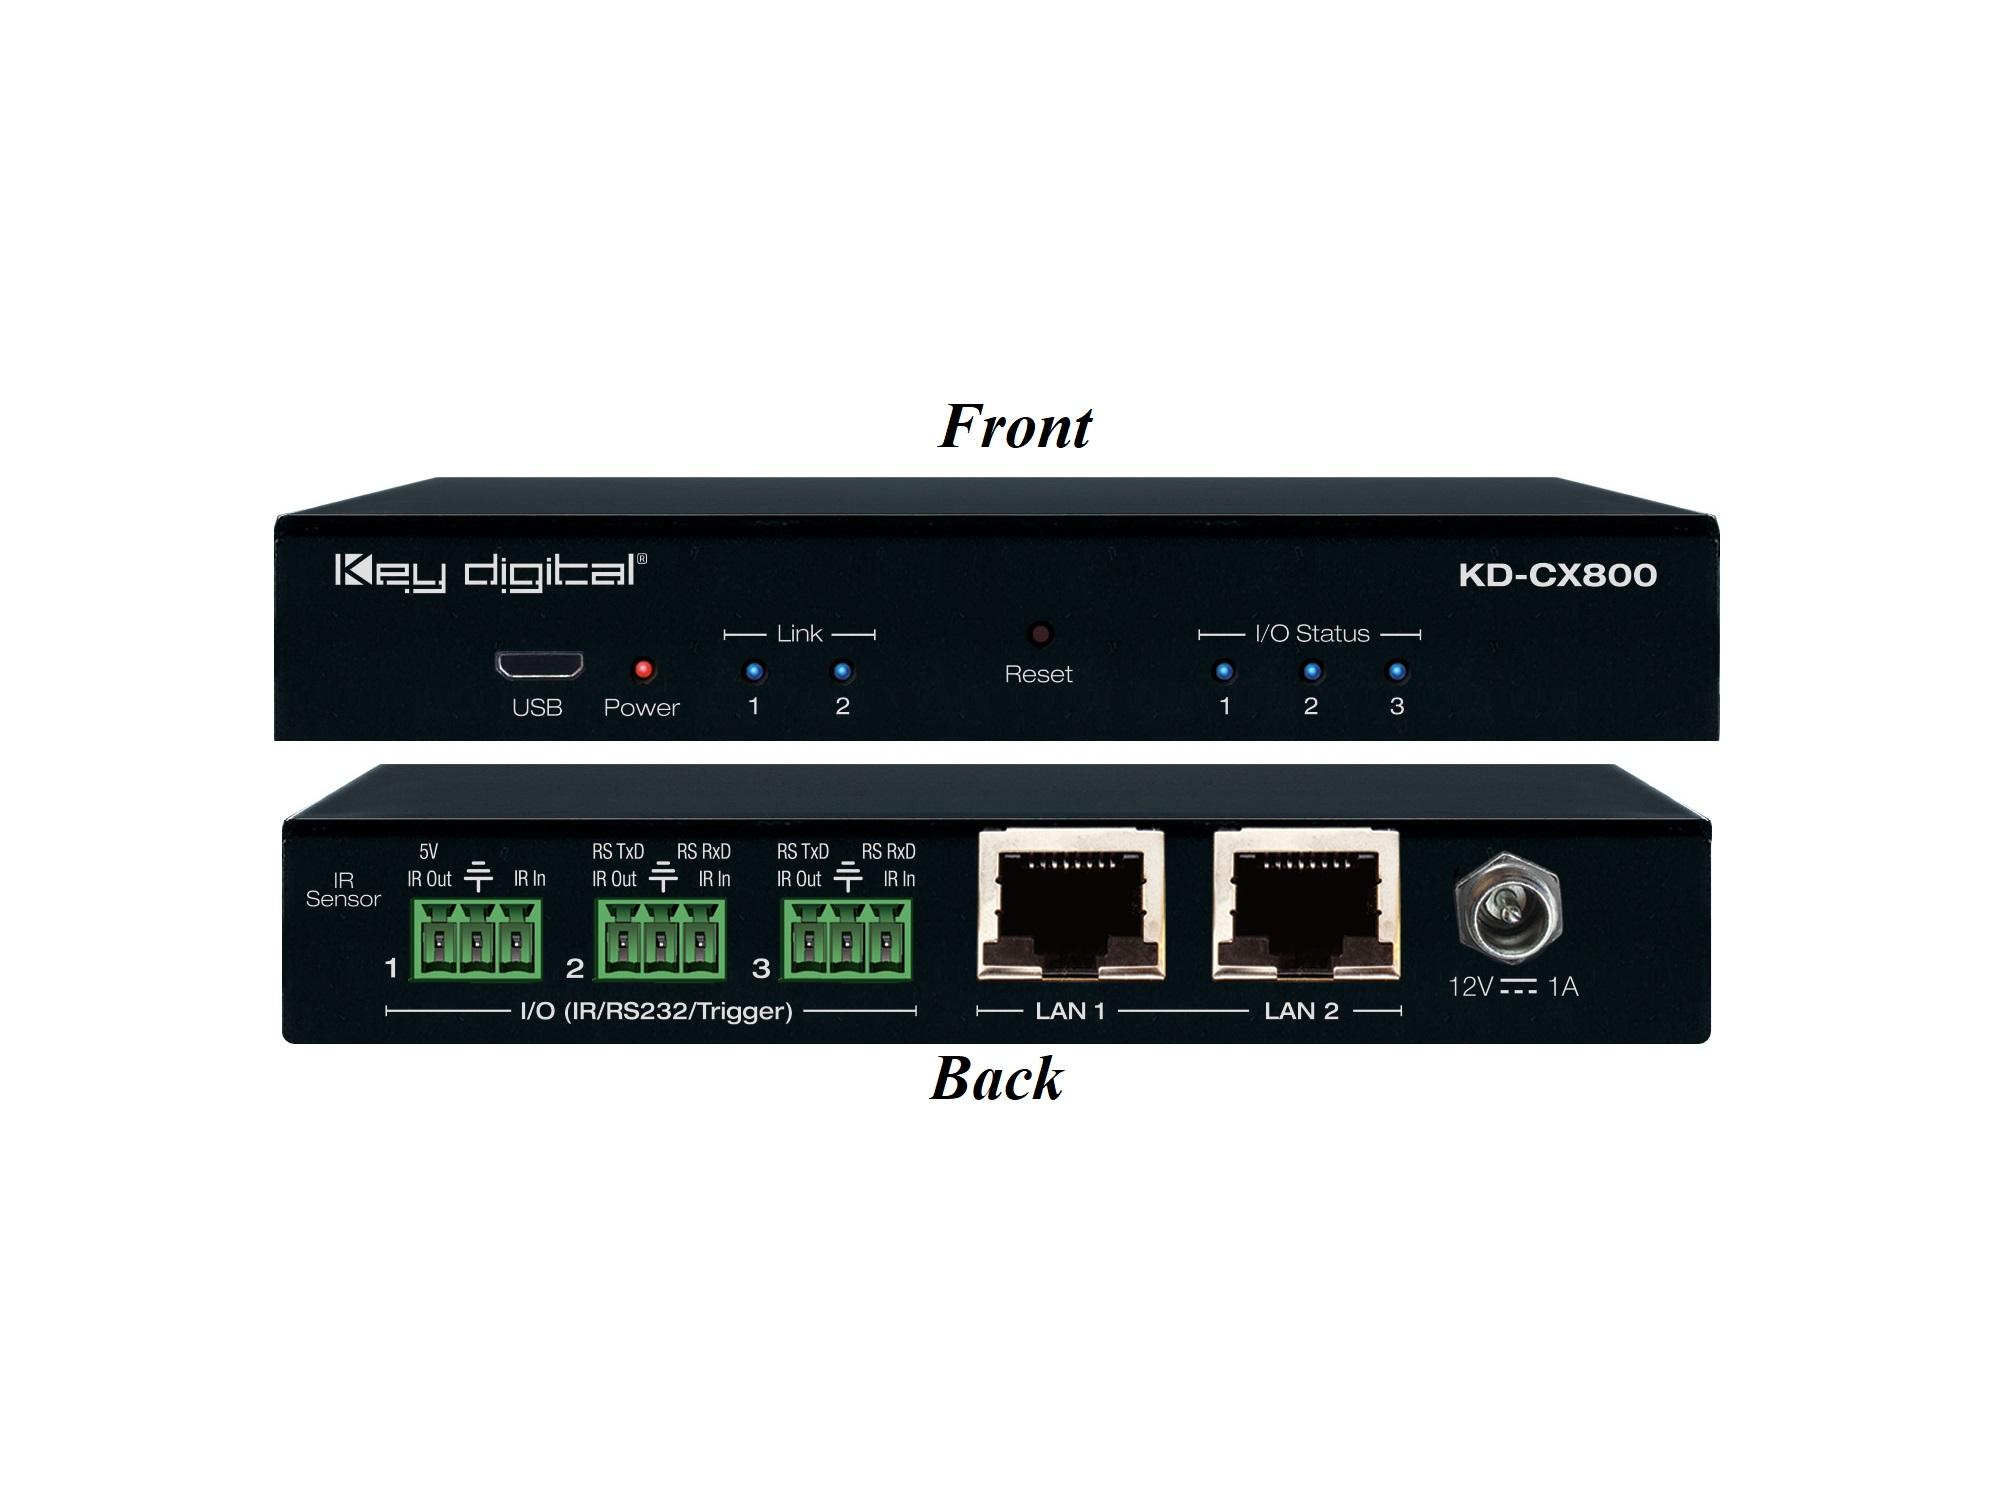 KD-CX800 Control Interface with IR and RS-232 over IP Routing by Key Digital